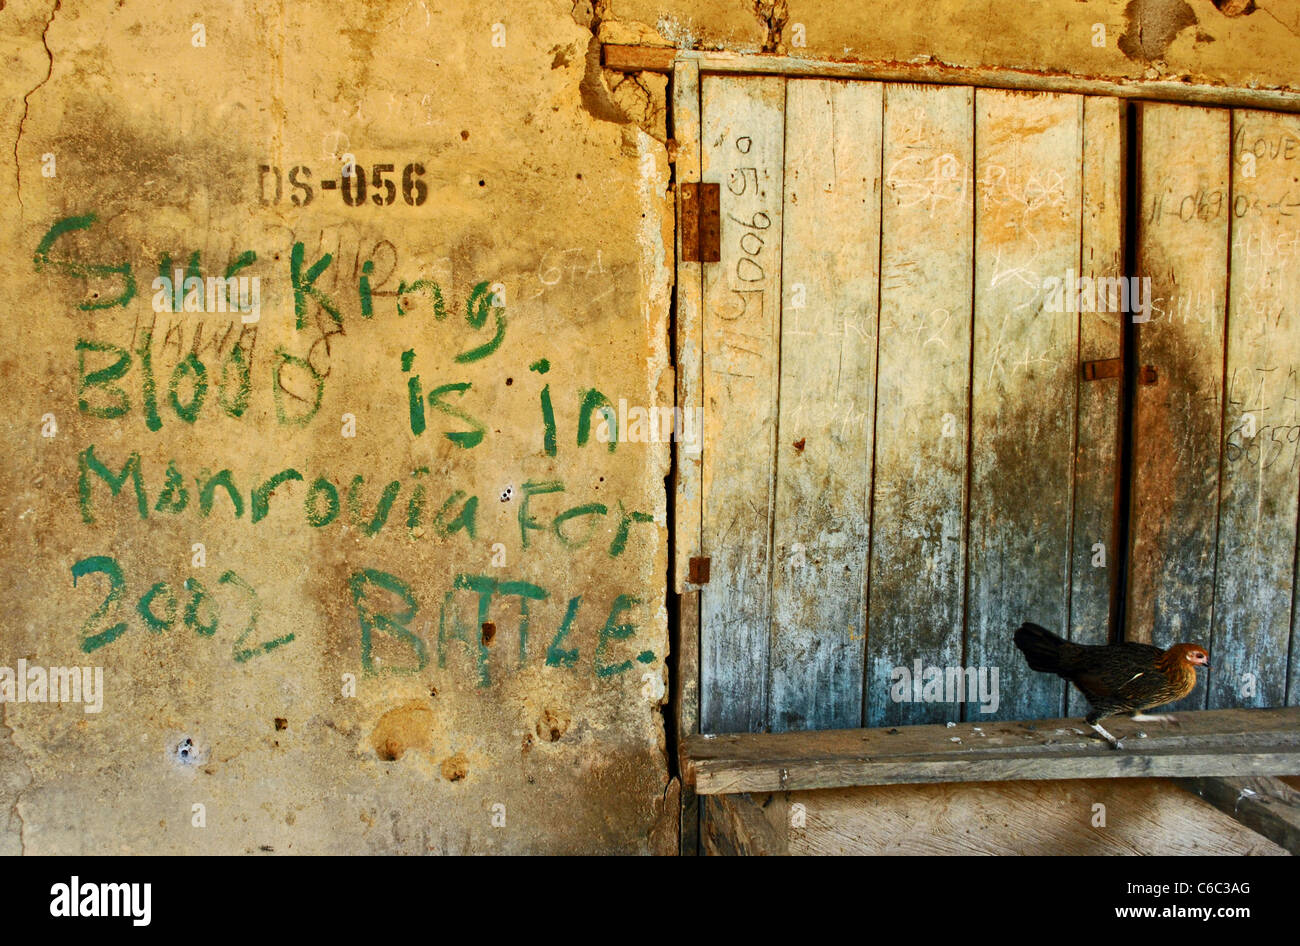 Graffiti left by LURD rebels on a wall in Bolahun, Liberia - Stock Image